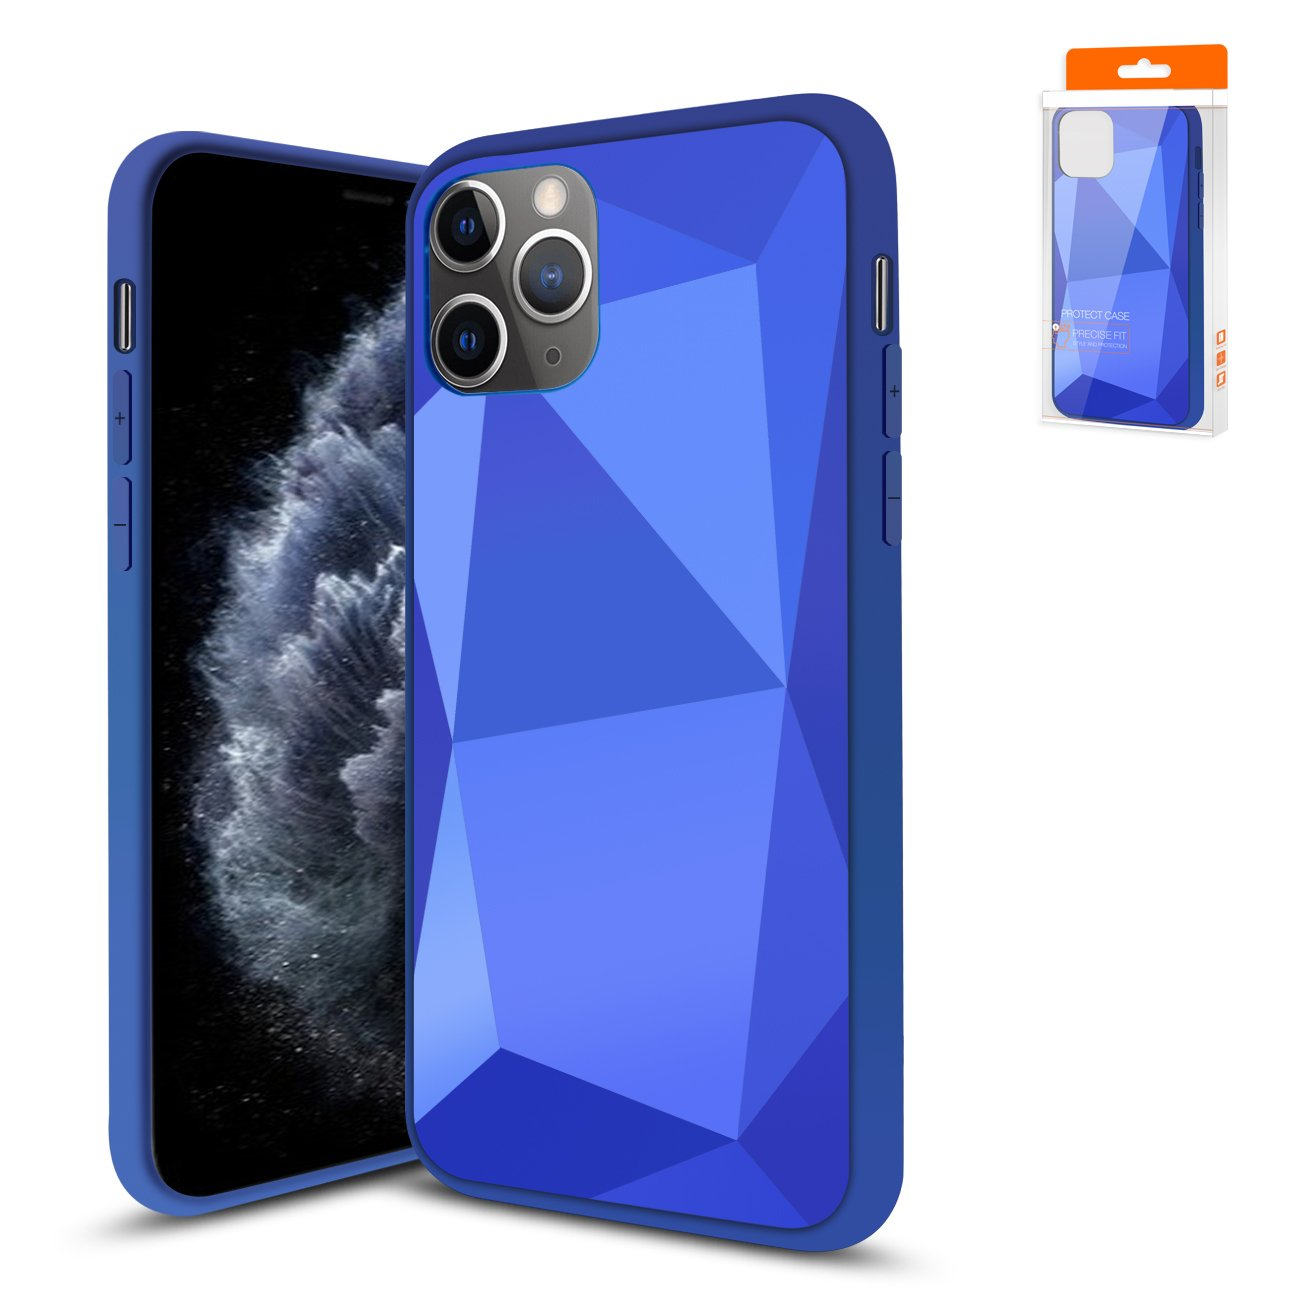 Apple iPhone 11 Pro Apple Diamond Cases In Blue